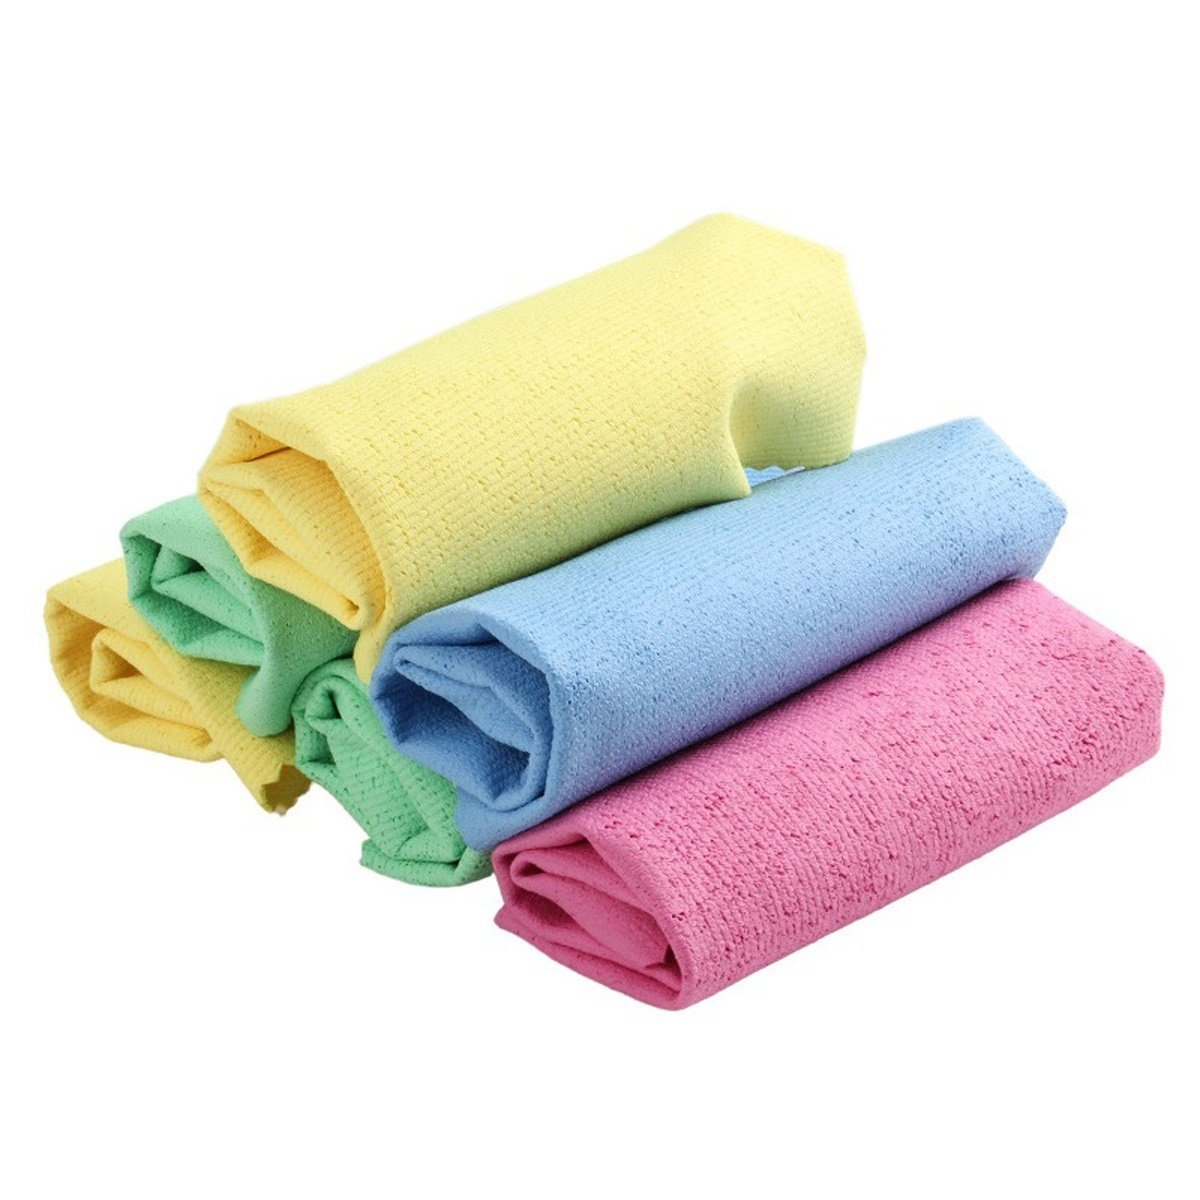 Microfiber Dust Cleaning Towels Terry Cloth With PU Coating for Kitchen Dish Cloth